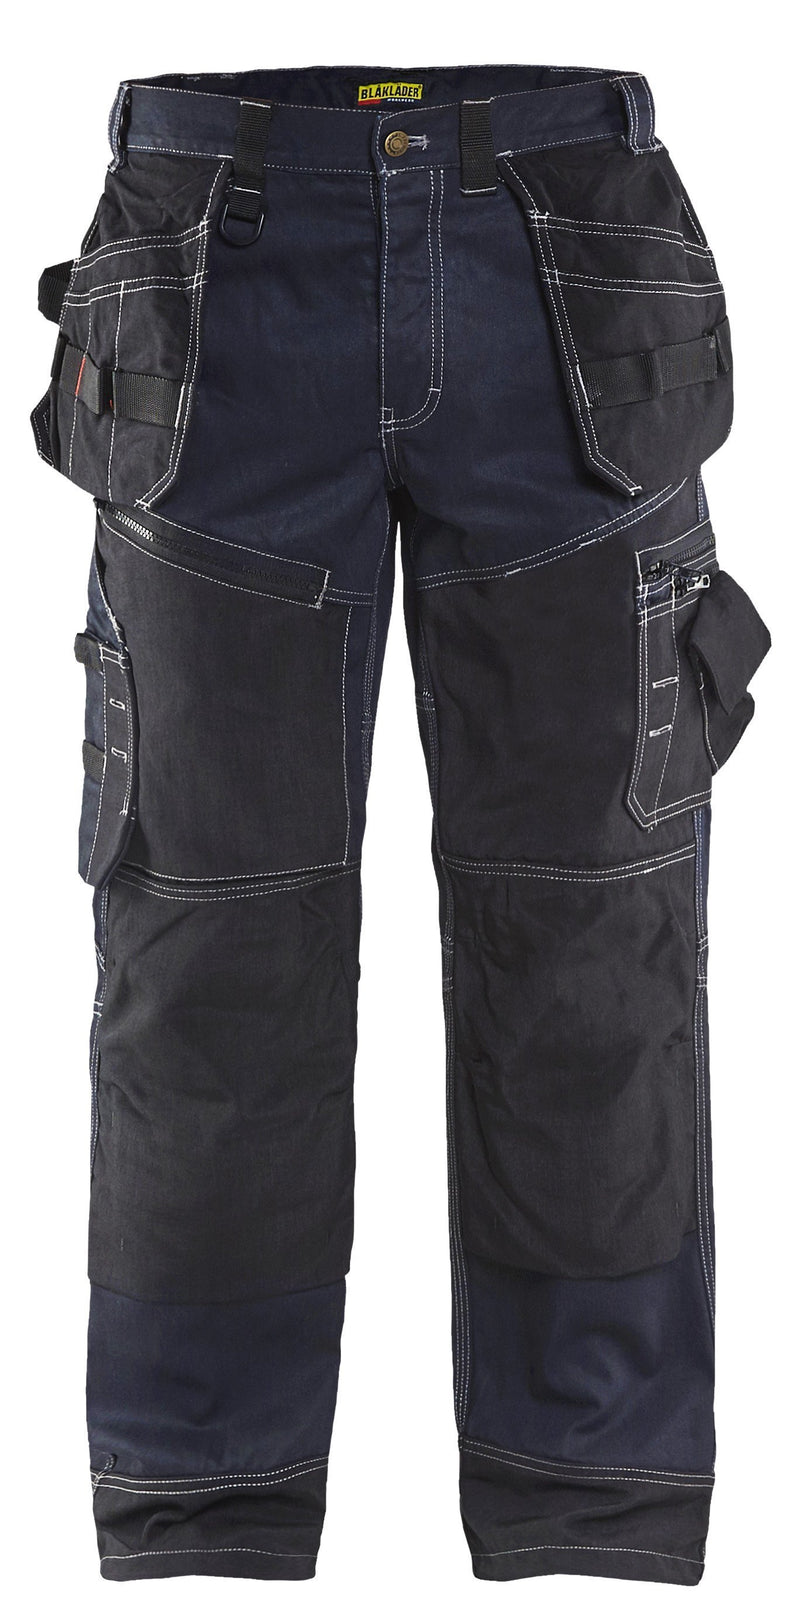 Blaklader - 1500 Pantalon X1500 Cordura® DENIM (Film disponible) - Blakshop